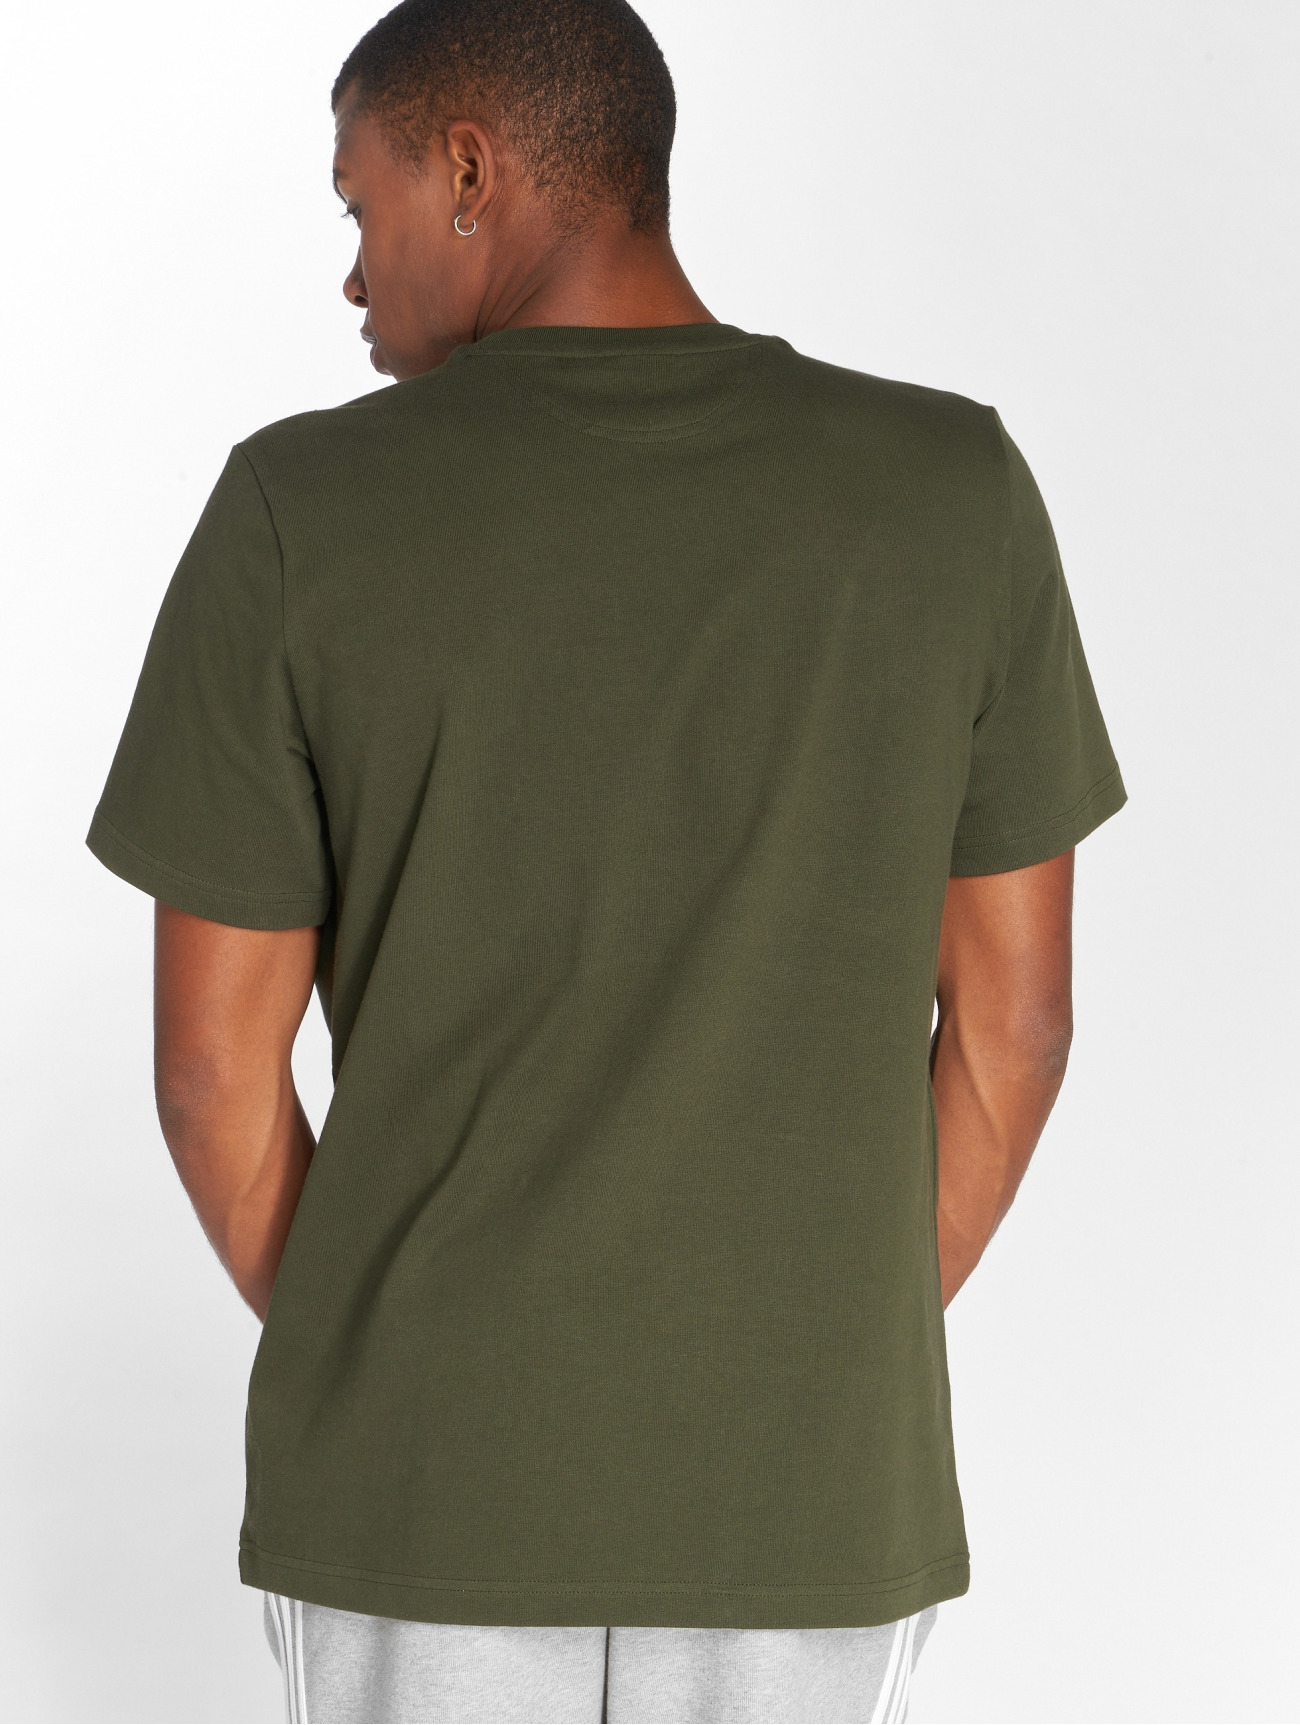 adidas Originals | Outline Tee  olive Homme T-Shirt  500075| Homme Hauts